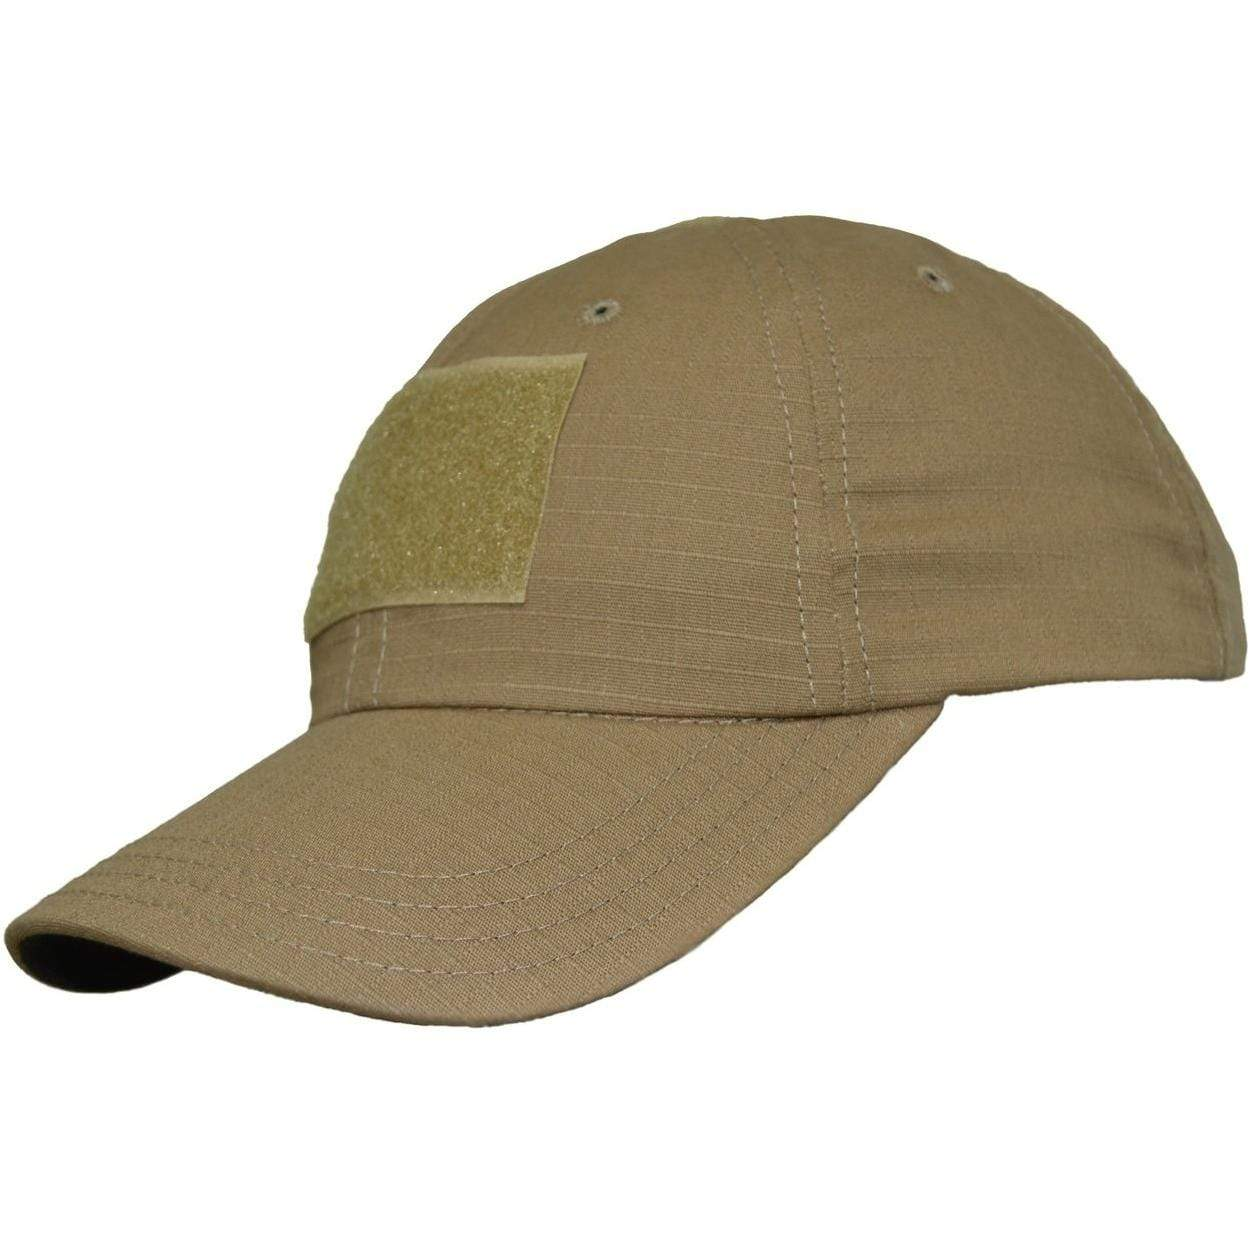 Tactical Gear Junkie Apparel Coyote Brown Tactical Gear Junkie American Made Tactical Operator Hat